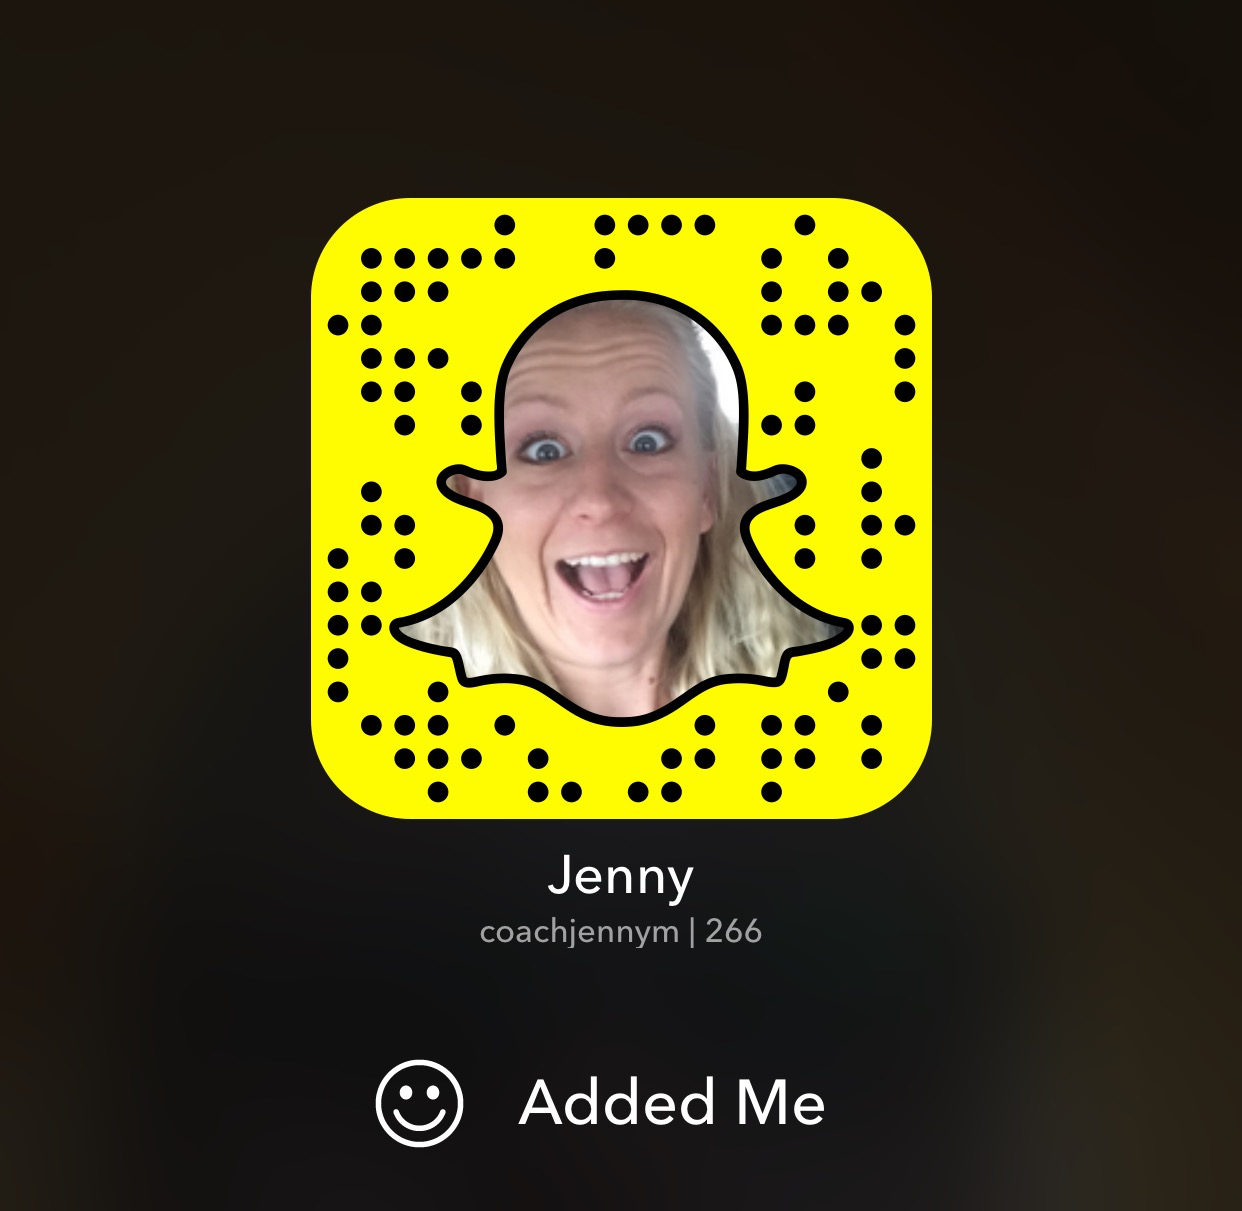 Are you on SnapChat? Add me